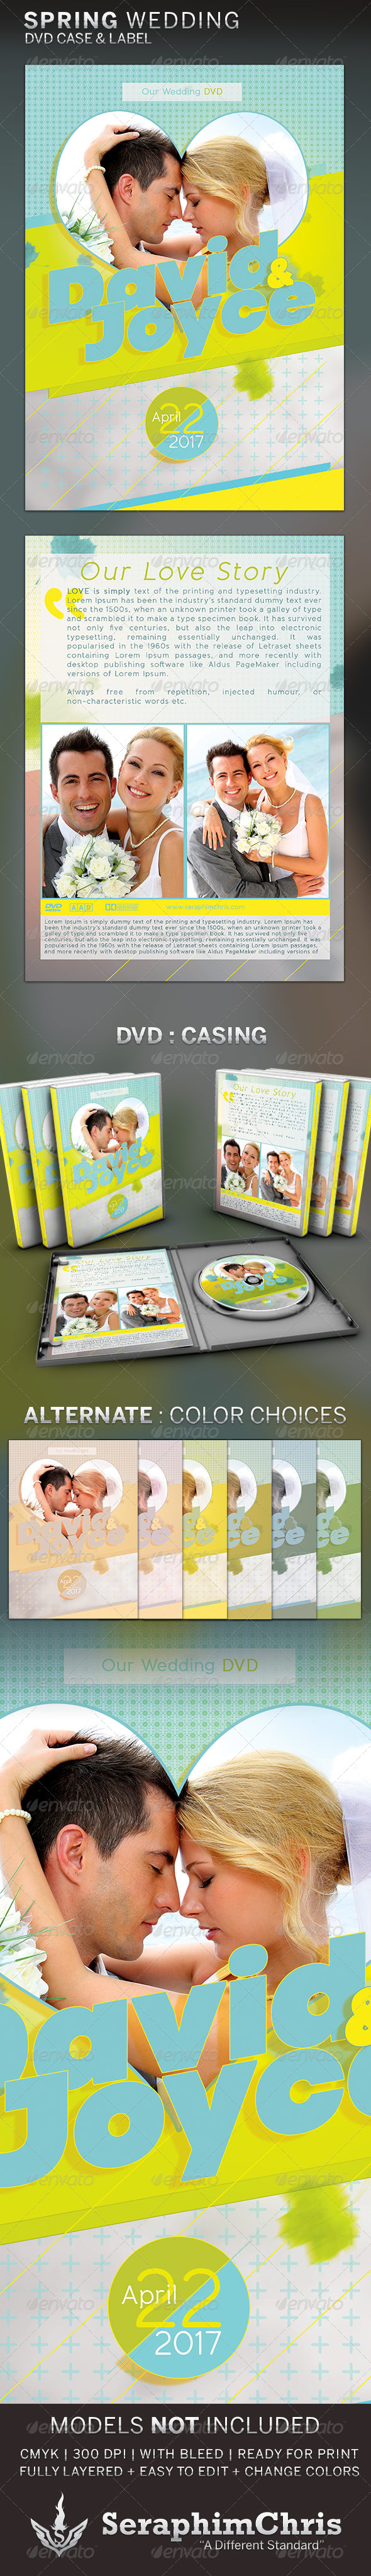 Spring Wedding DVD Template - CD & DVD Artwork Print Templates